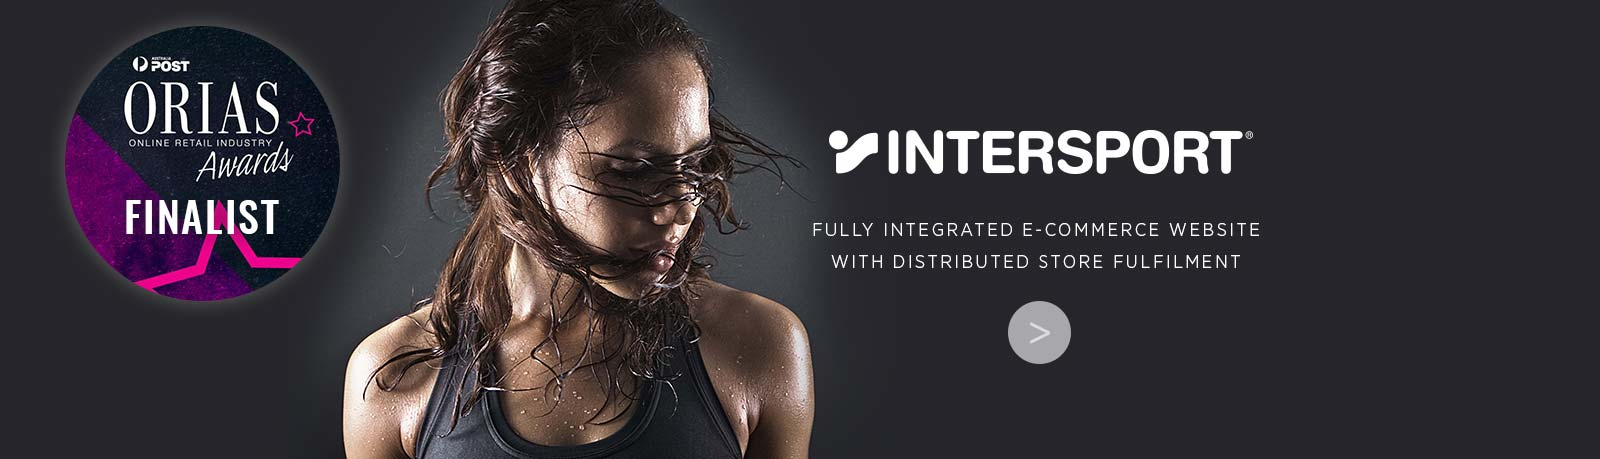 Intersport Fully Integrated eCommerce website with distributed store fulfilment. Nominated for ORIA award for best in-store initiative stockinstore